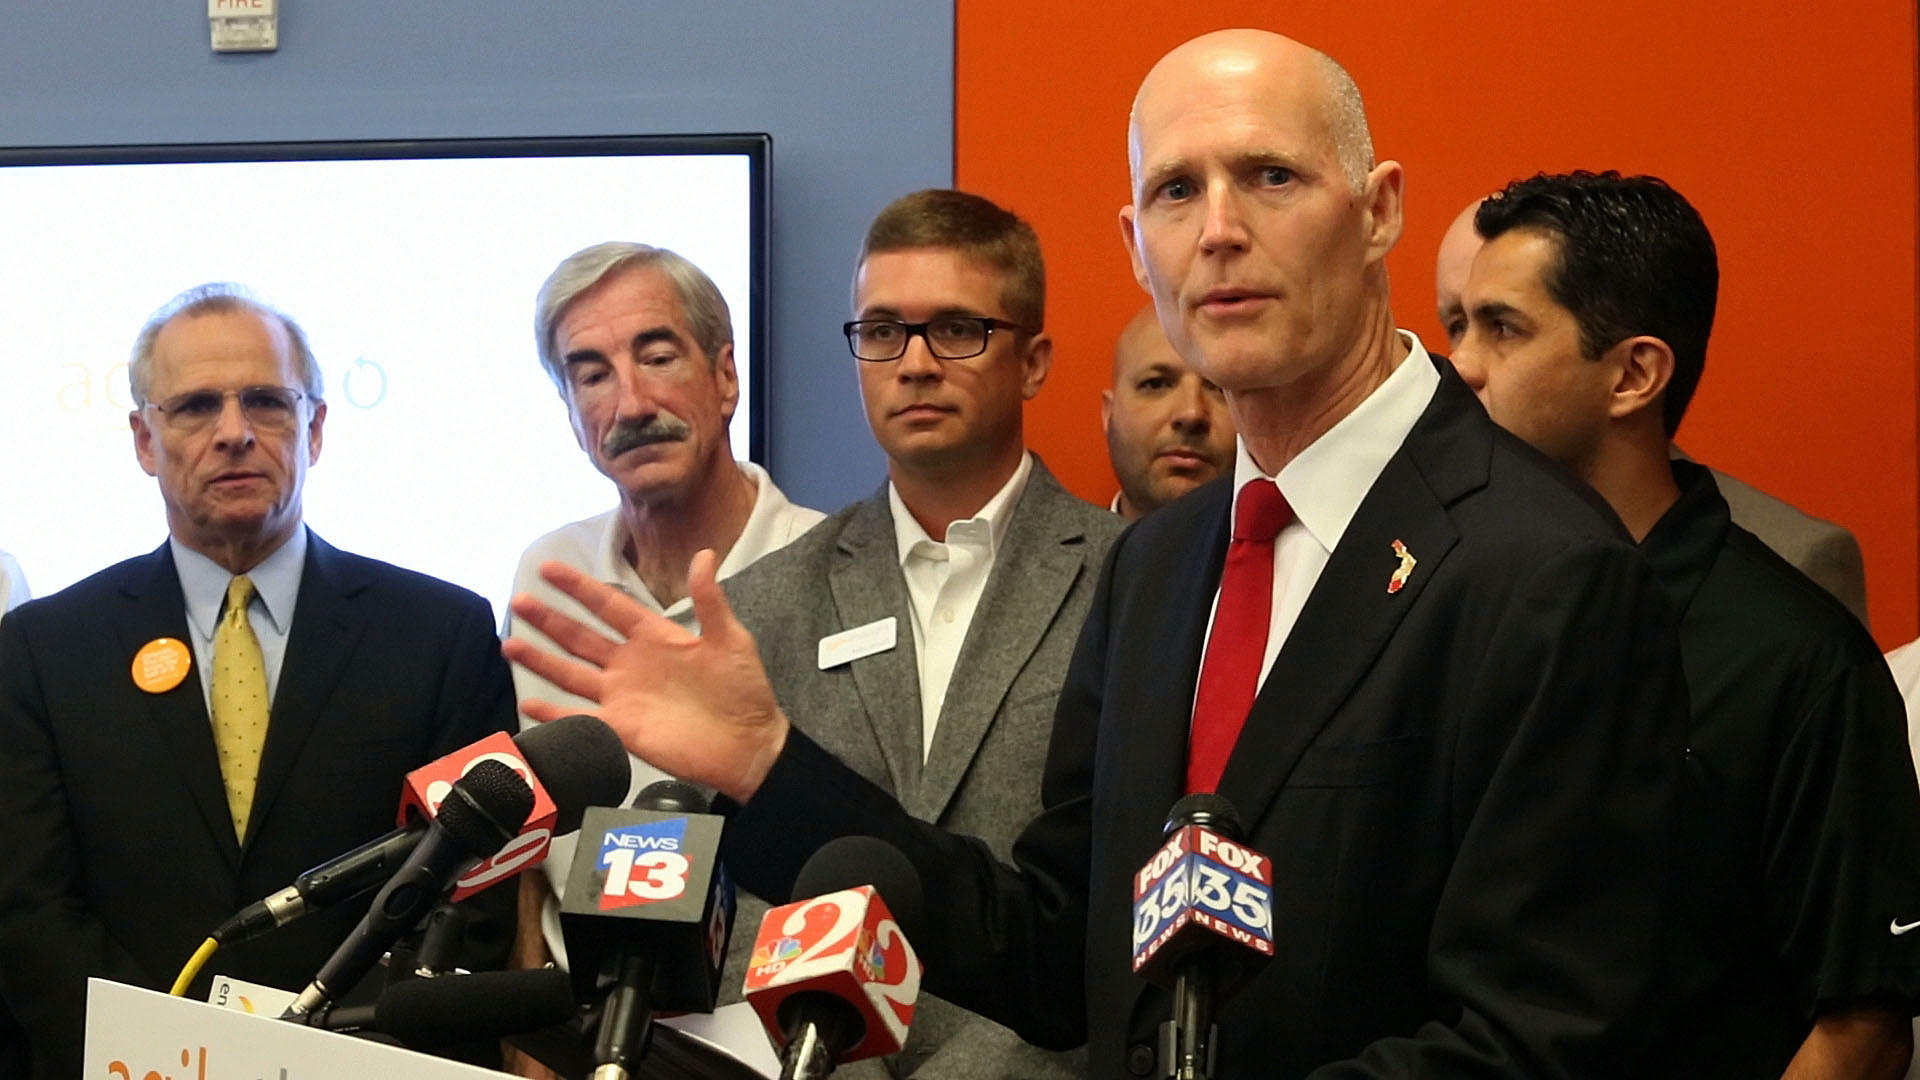 Florida's unemployment rate dipped to 6.1 percent in January, as the state added almost 193,000 jobs over the last 12 months, Gov. Rick Scott said Monday, March 17, 2014 at AgileThought a business expanding in downtown Orlando.